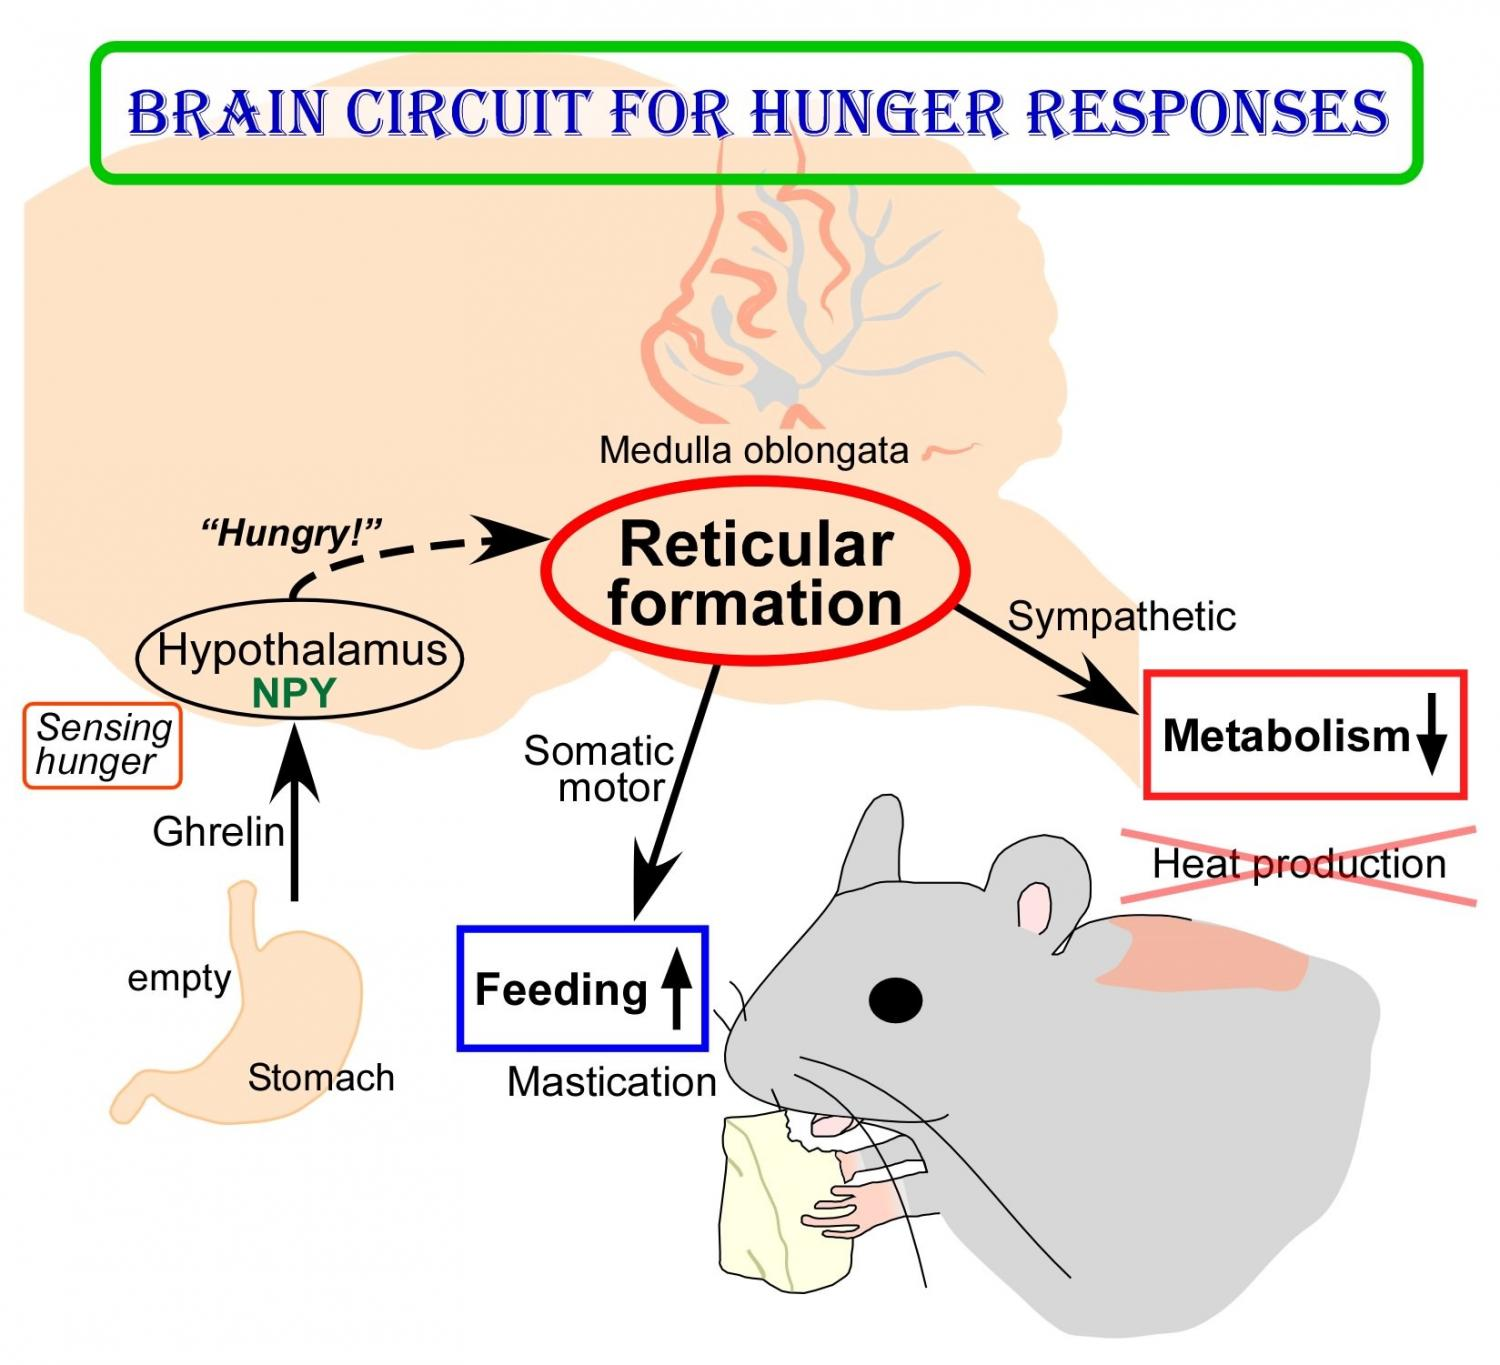 New Insights Into Brain Circuit For Hunger Responses